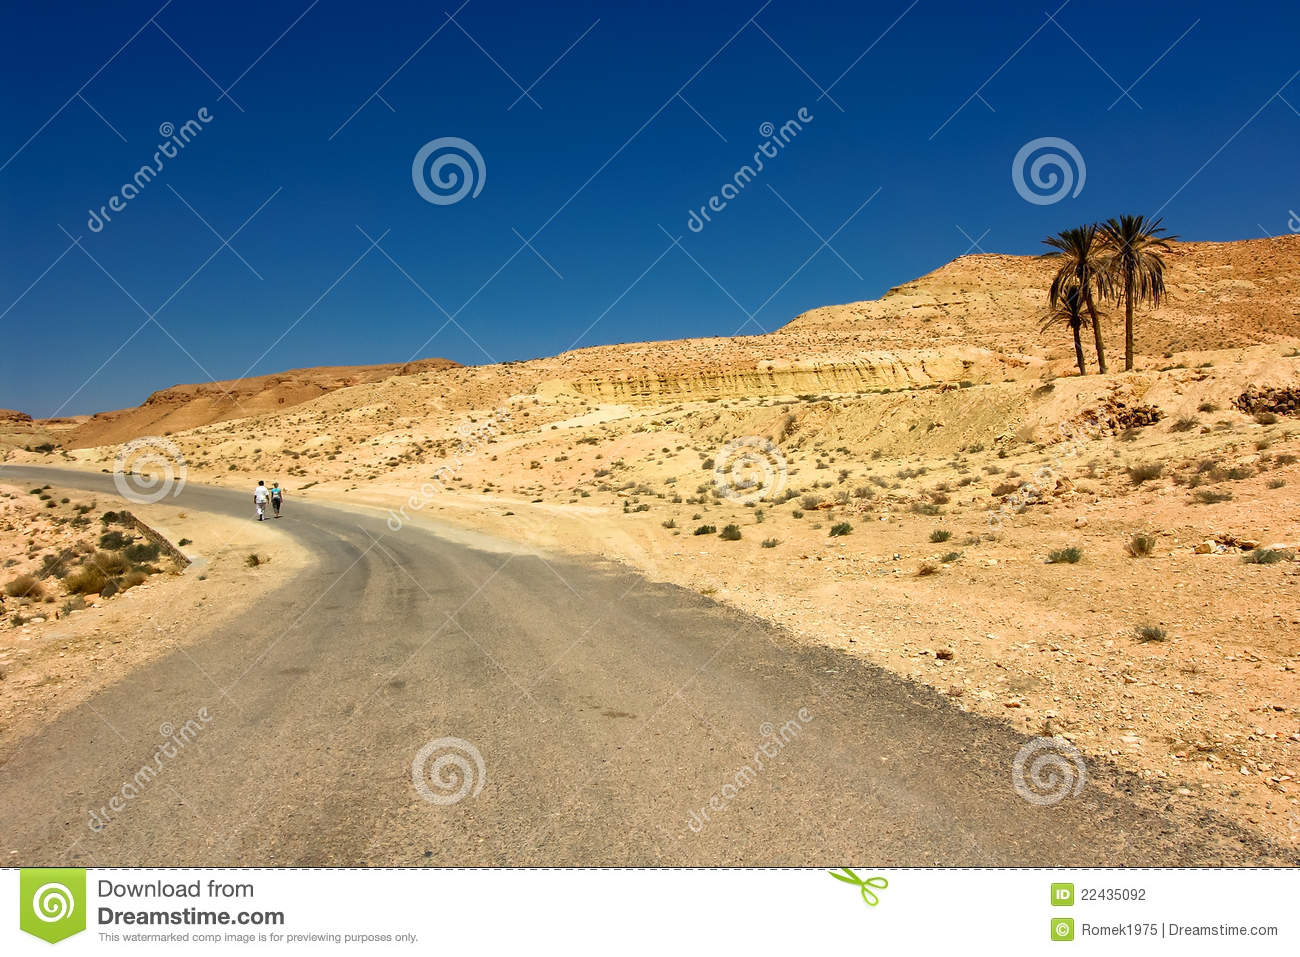 Image Desert Travelers In Tunisia Dreamstimecom Desert Travelers In Tunisia Stock Photo Image Of Empty Tourists